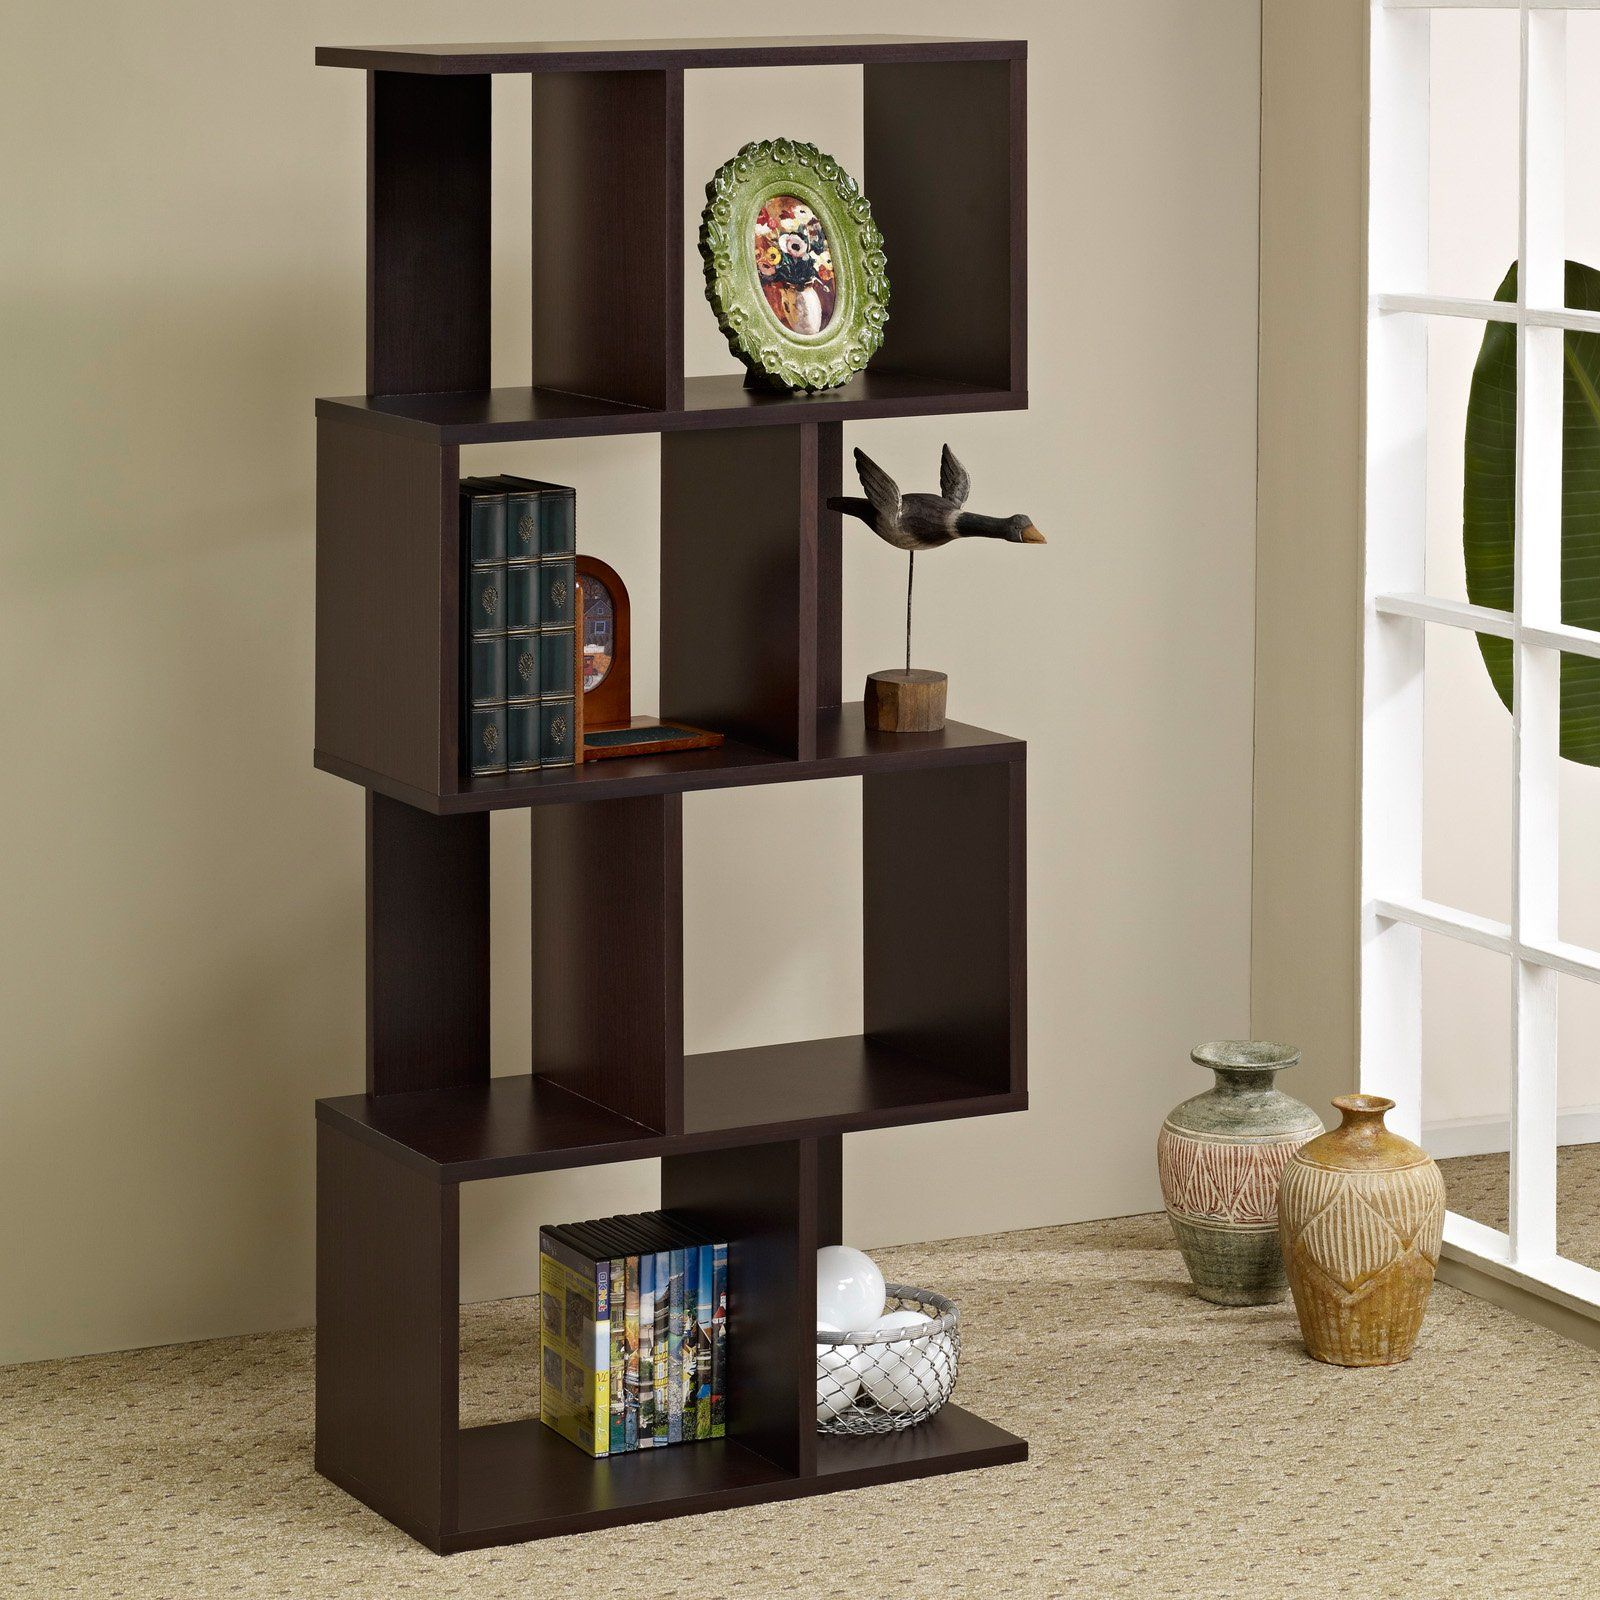 bookshelf bookcase furniture room great home divider for dividers